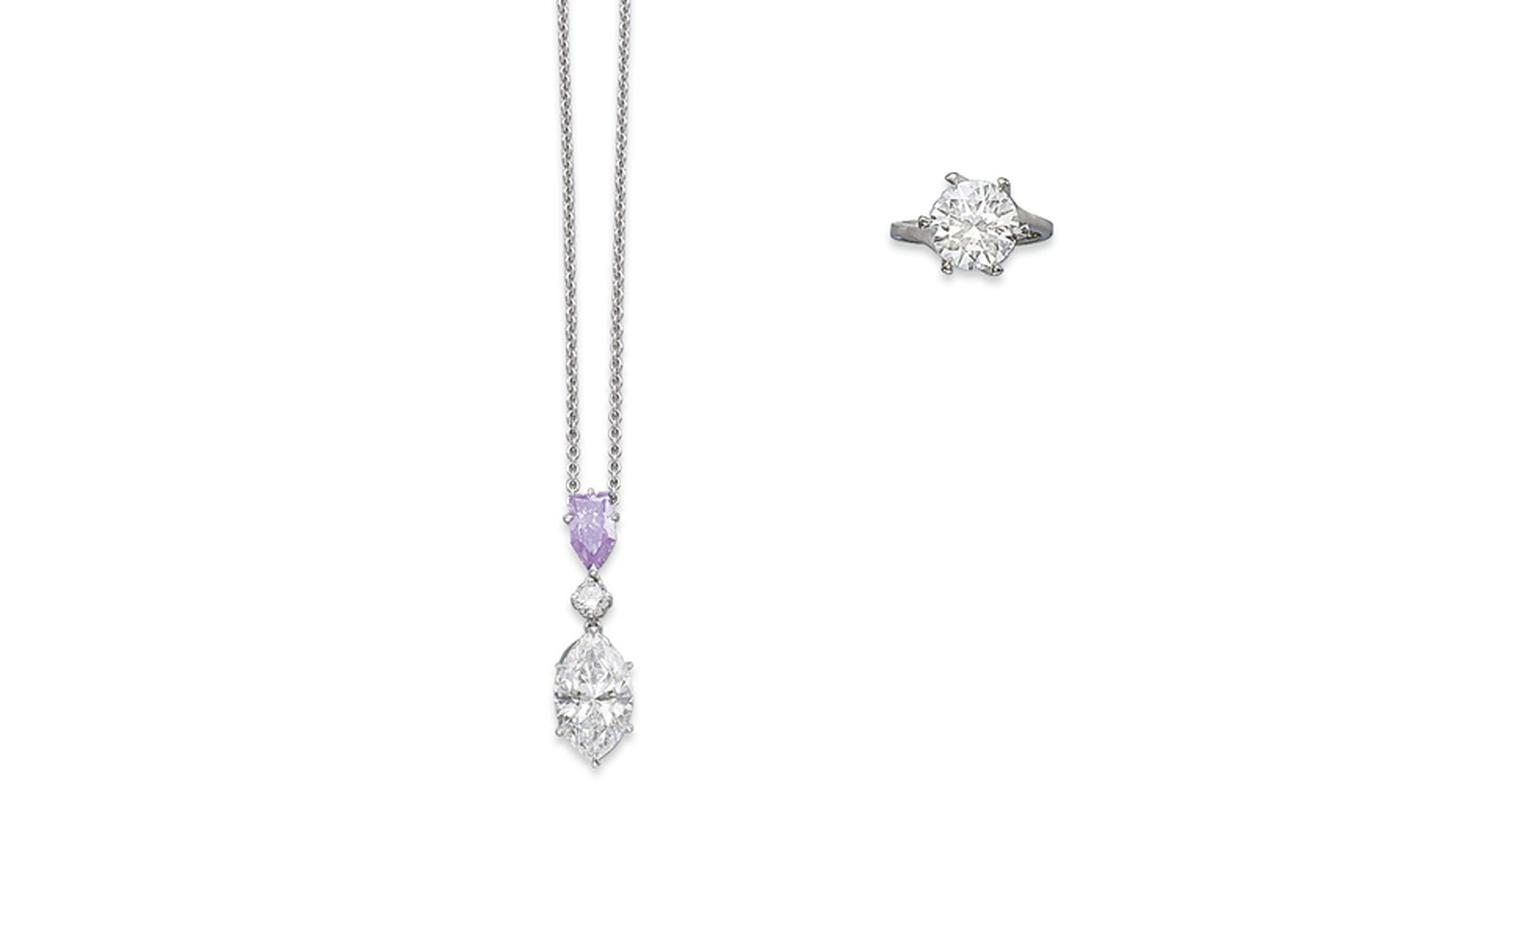 Lot 291. A coloured diamond pendant. The pendant set with a bullet-shaped fancy purple diamond, weighing 1.04 carat, suspending a brilliant-cut diamond and a marquise-cut diamond necklace. Estimate CHF 180,000 - CHF 220,000 SOLD FOR CHF 231,000